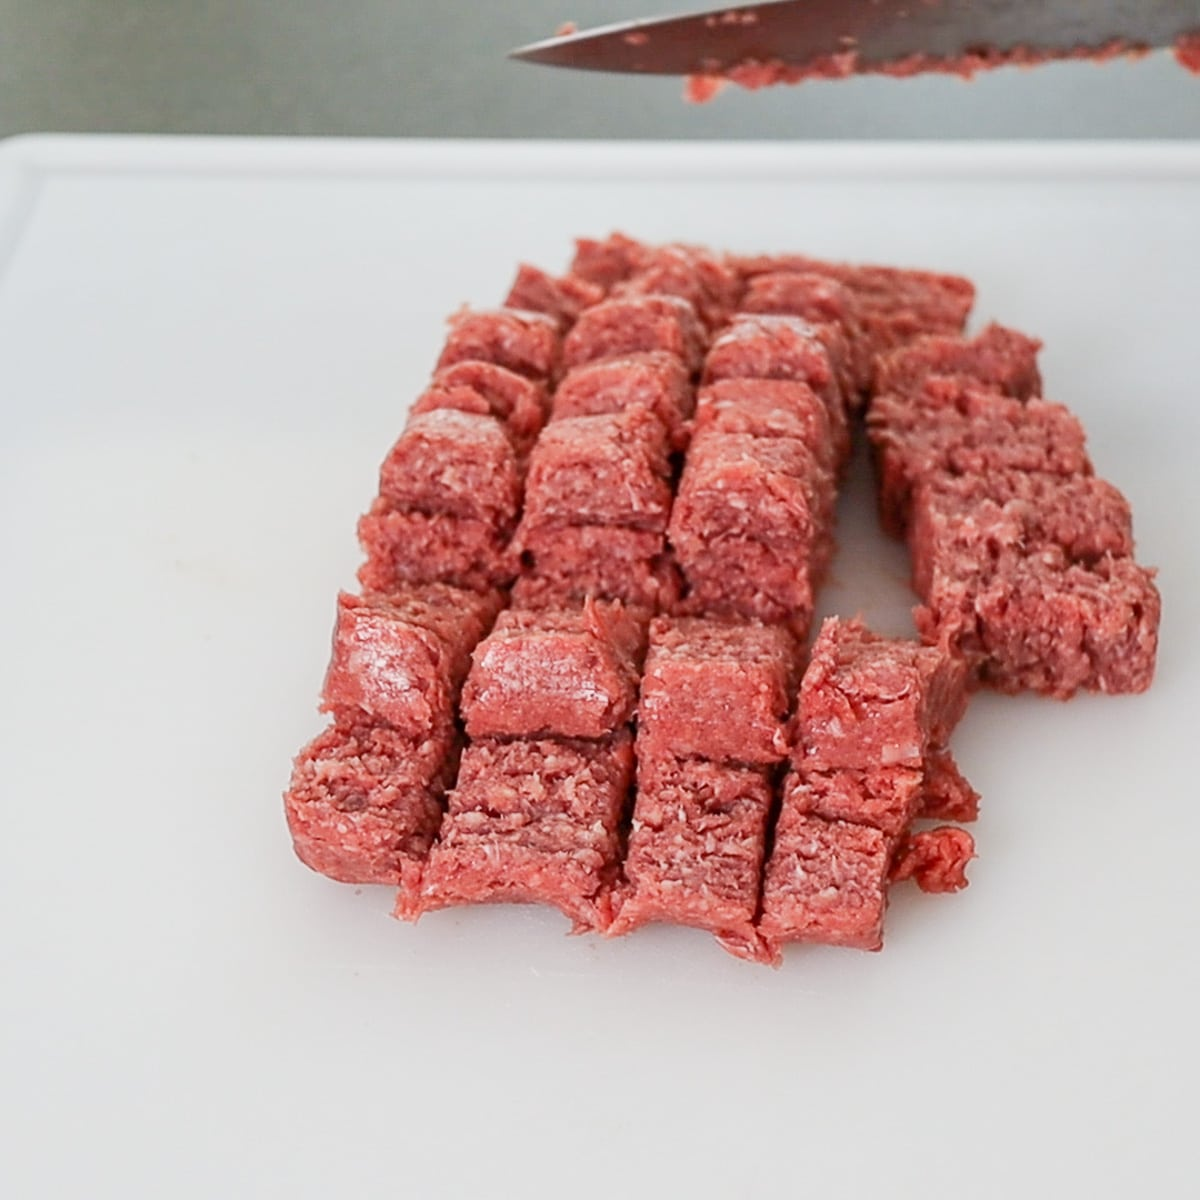 cutting ground beef into 1' pieces